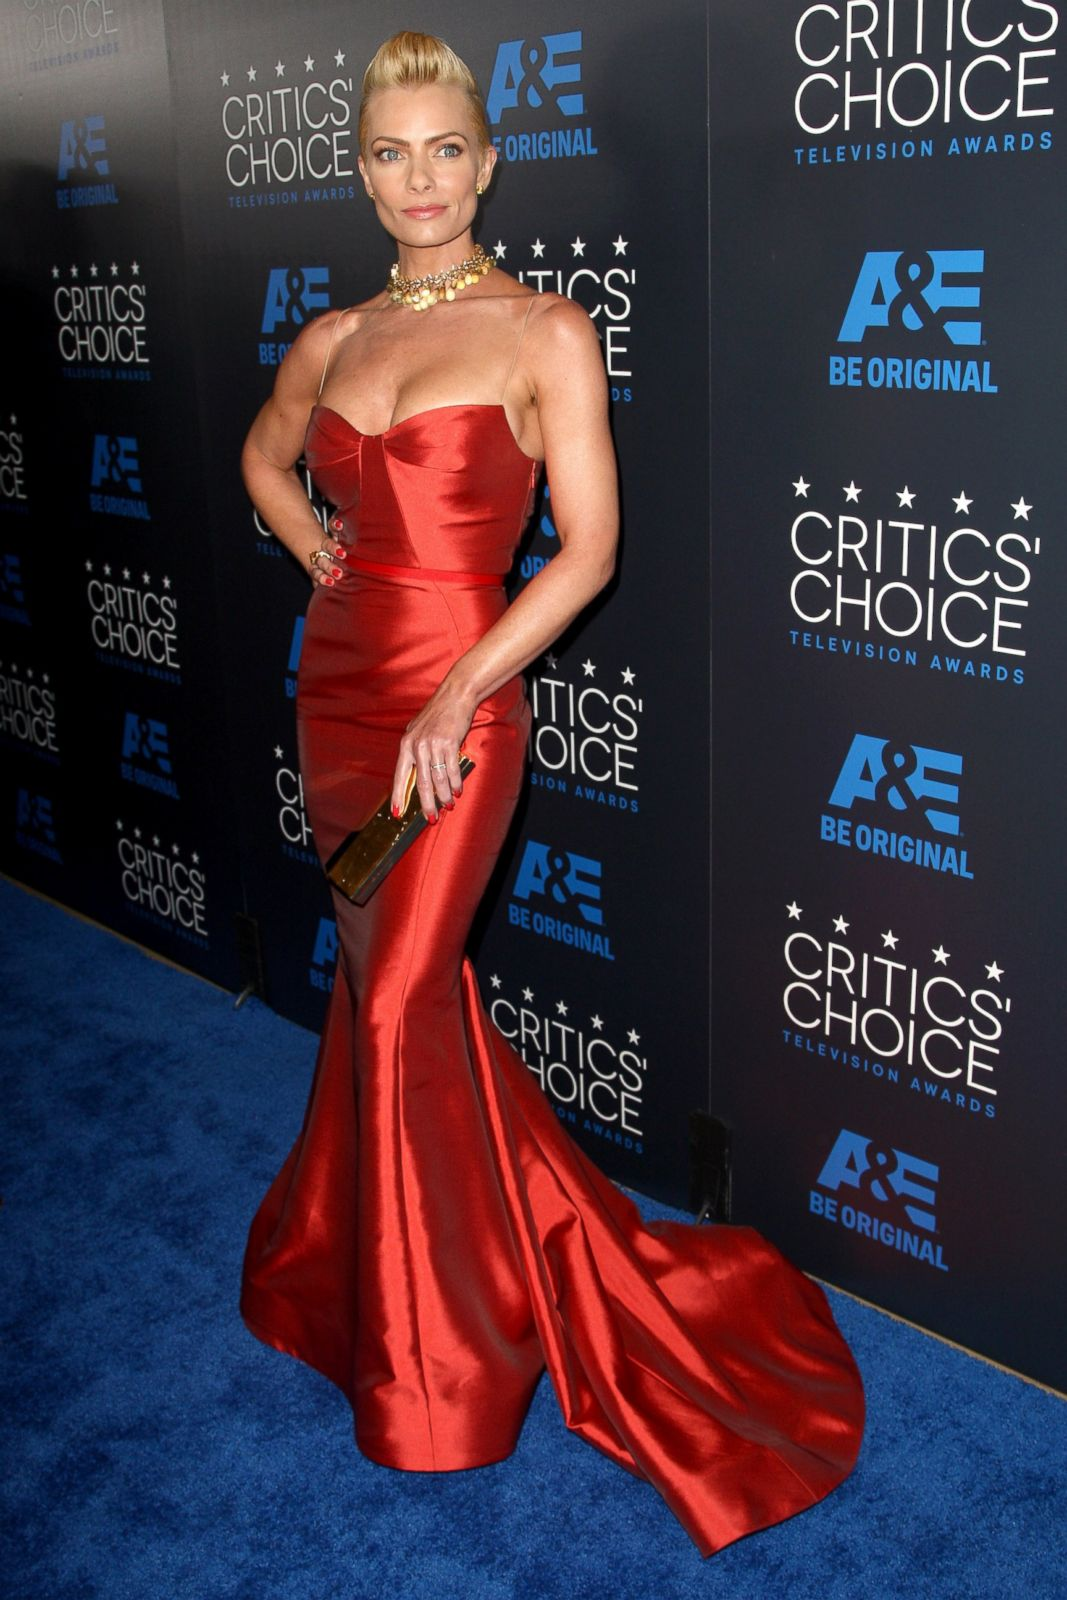 Jaime Pressly Picture | June's Top Celebrity Pictures